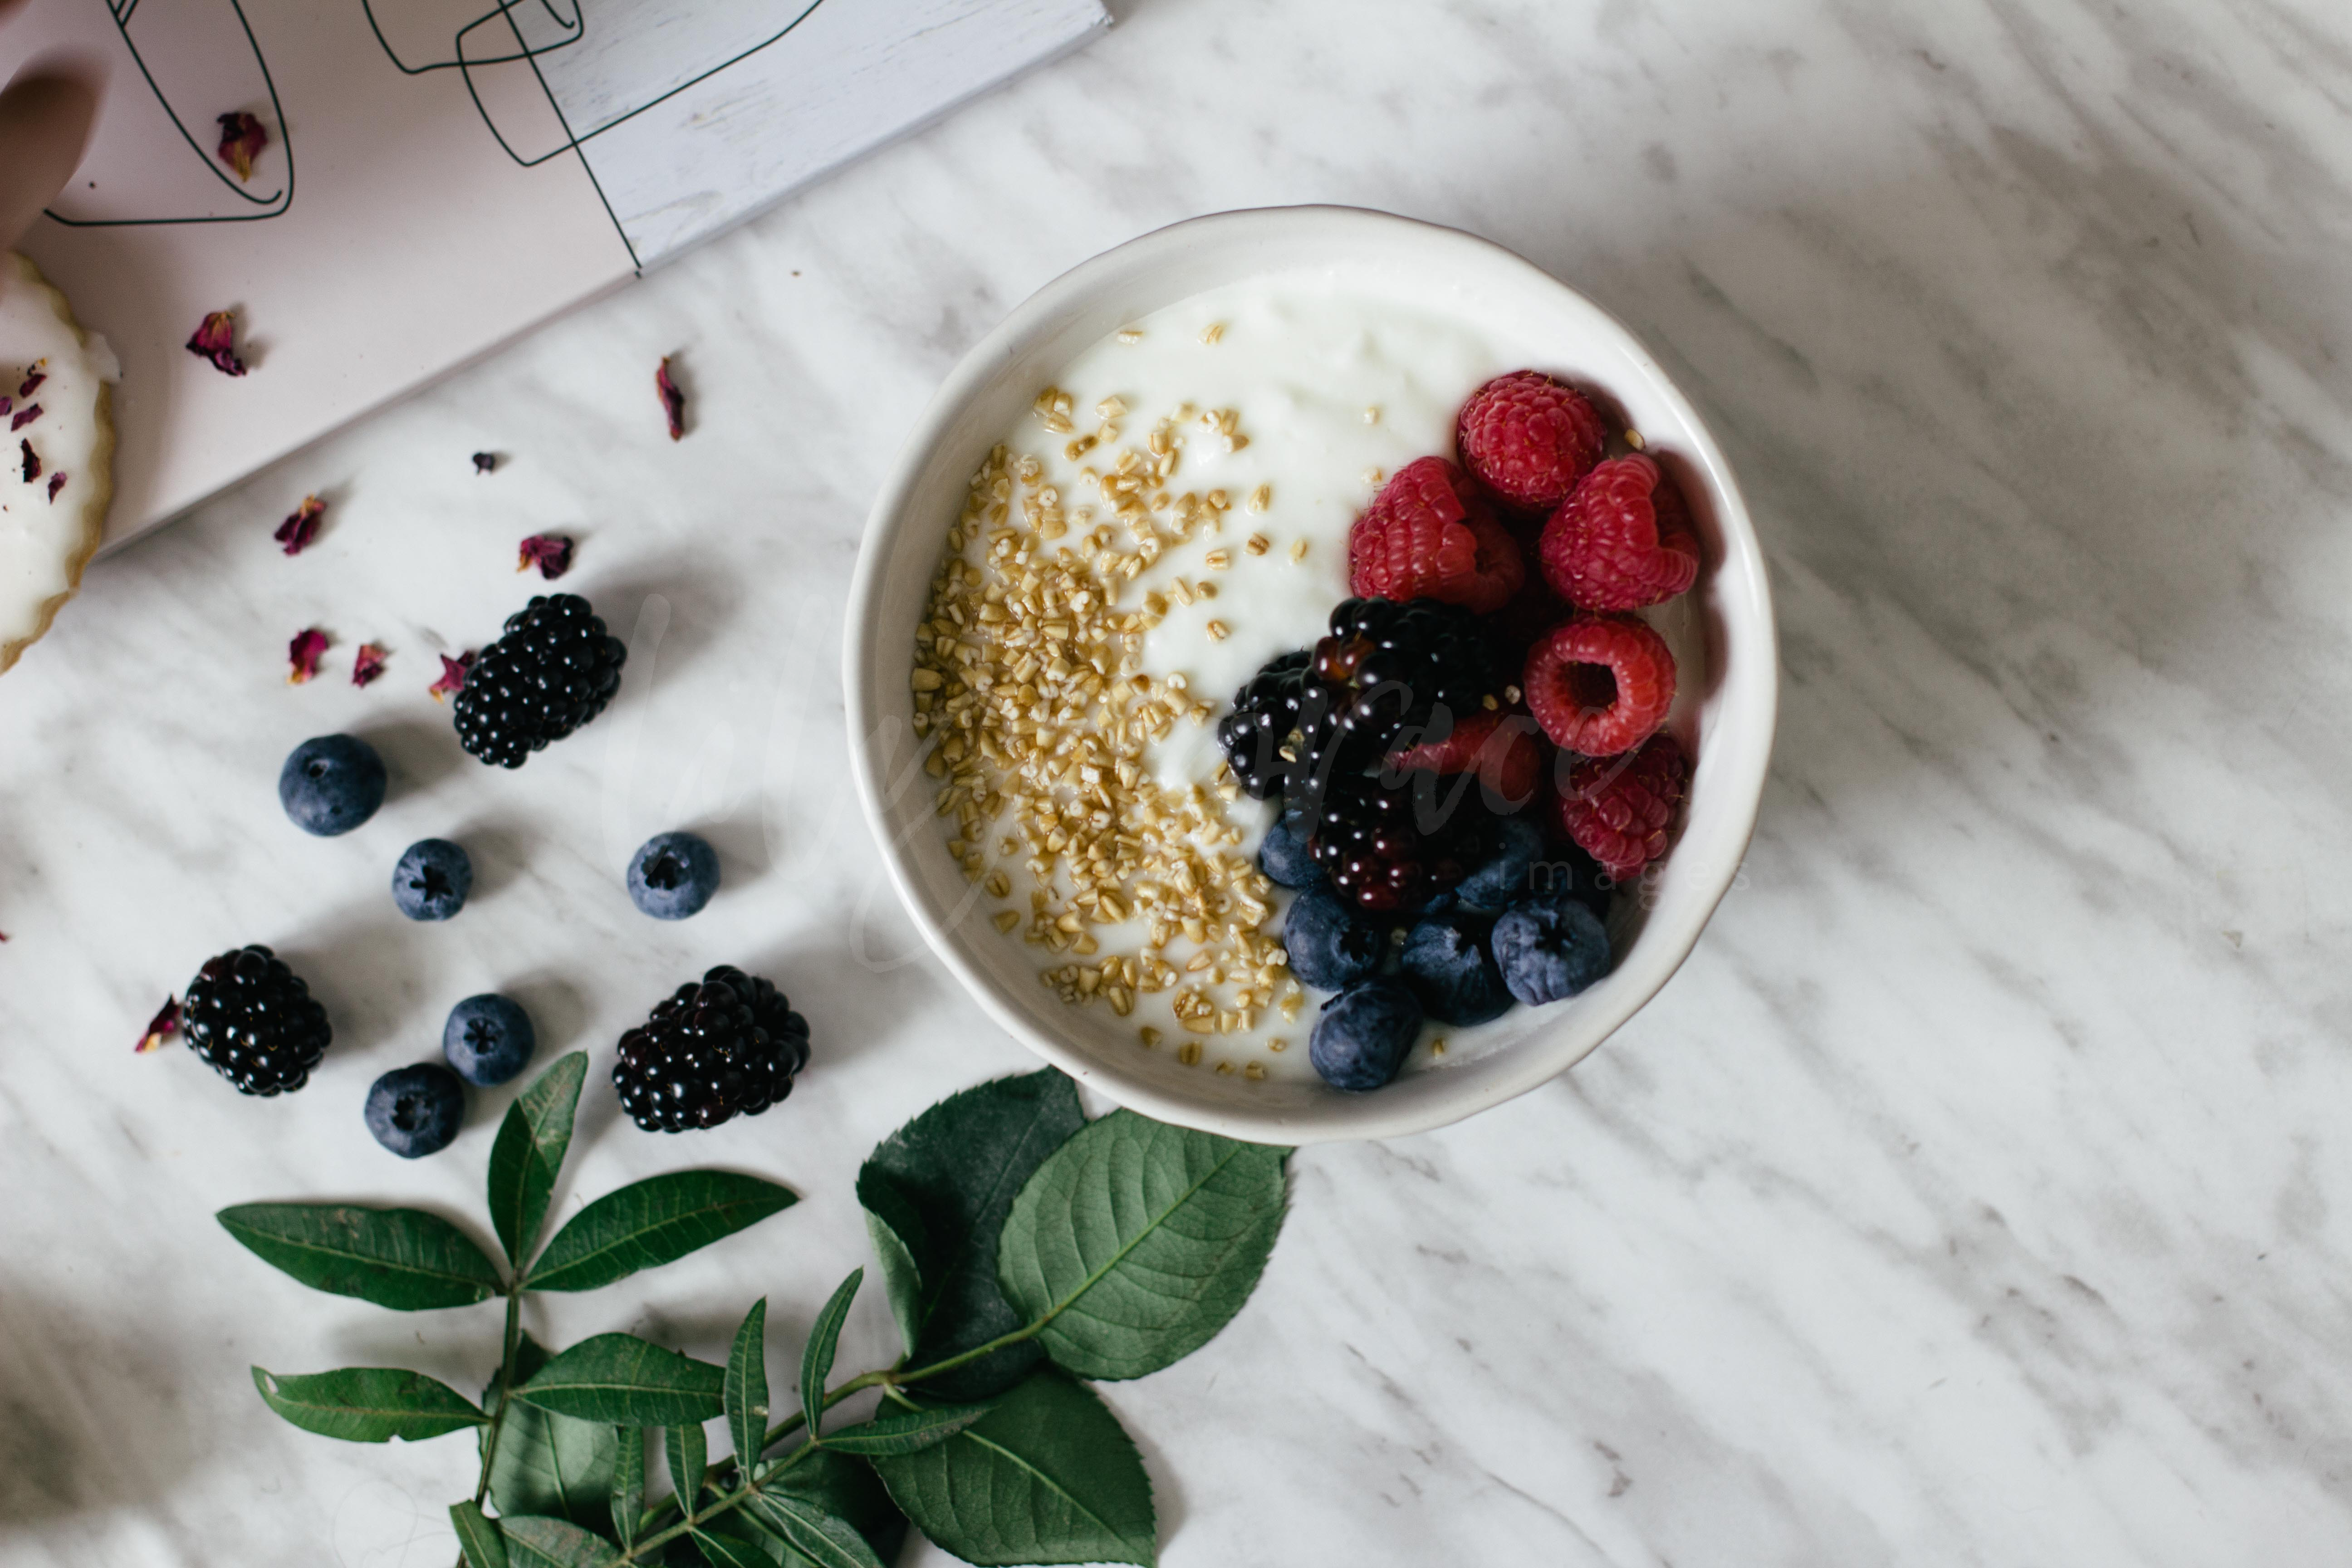 barrie stock photography, barrie, stock photos, photos for instagram, real photos, lilygrace images, toronto stock photography, yogurt bowl, flat lay, healthy living stock photos, healthy, healthy living, lifestyle